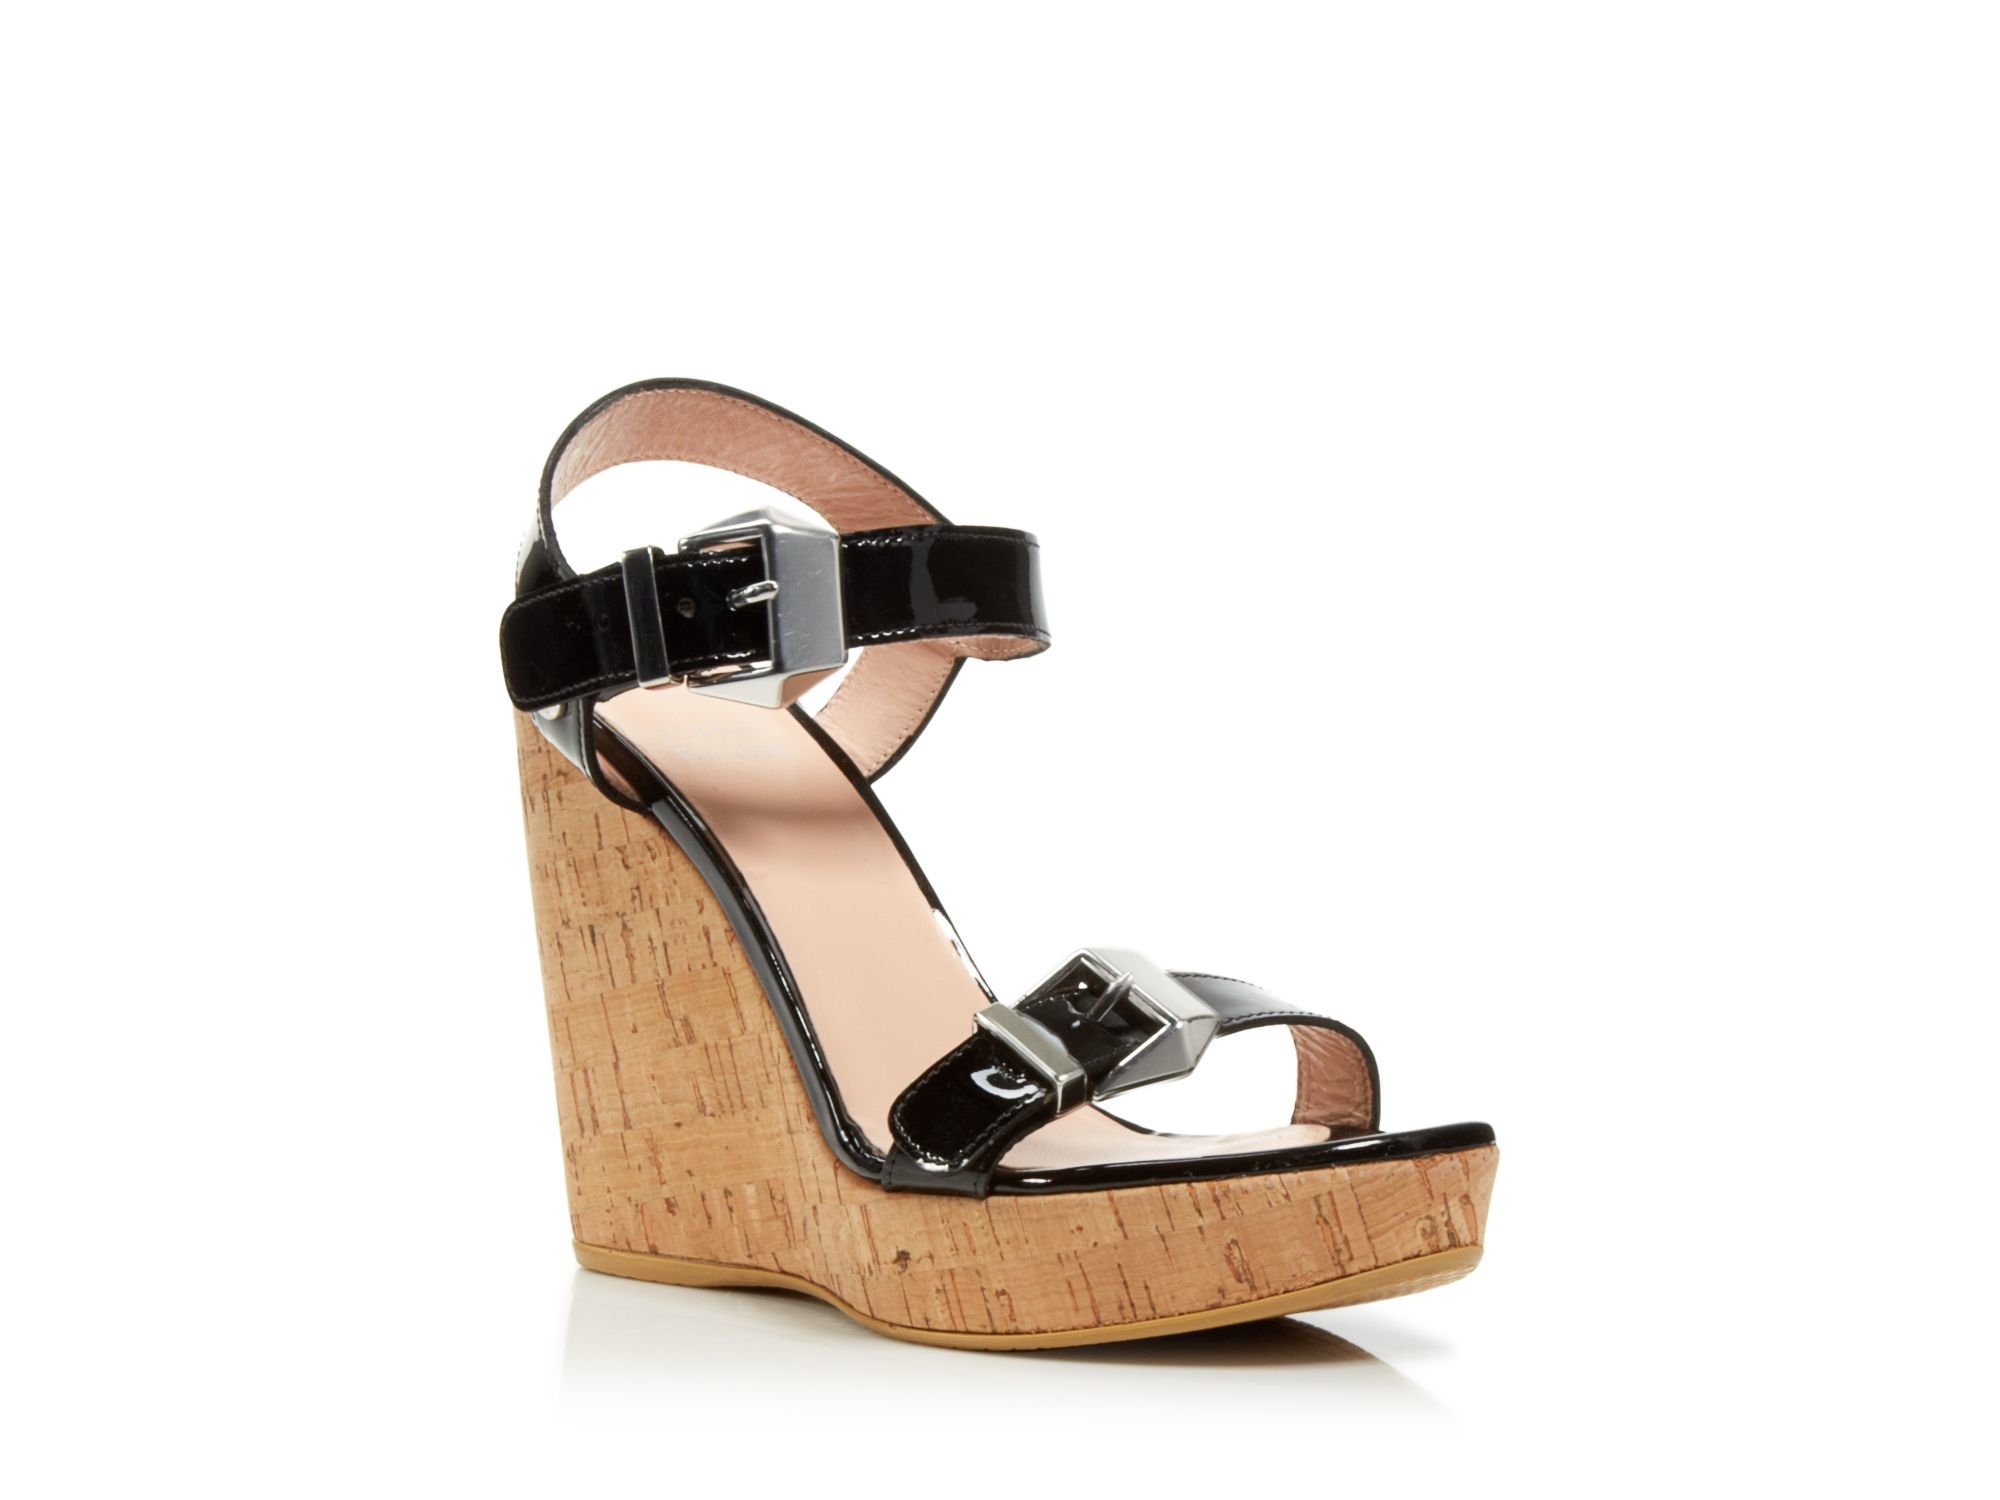 Ankle Strap Platform Wedge Sandals Twomuch Cork Stuart Weitzman Ankle Strap Shoes